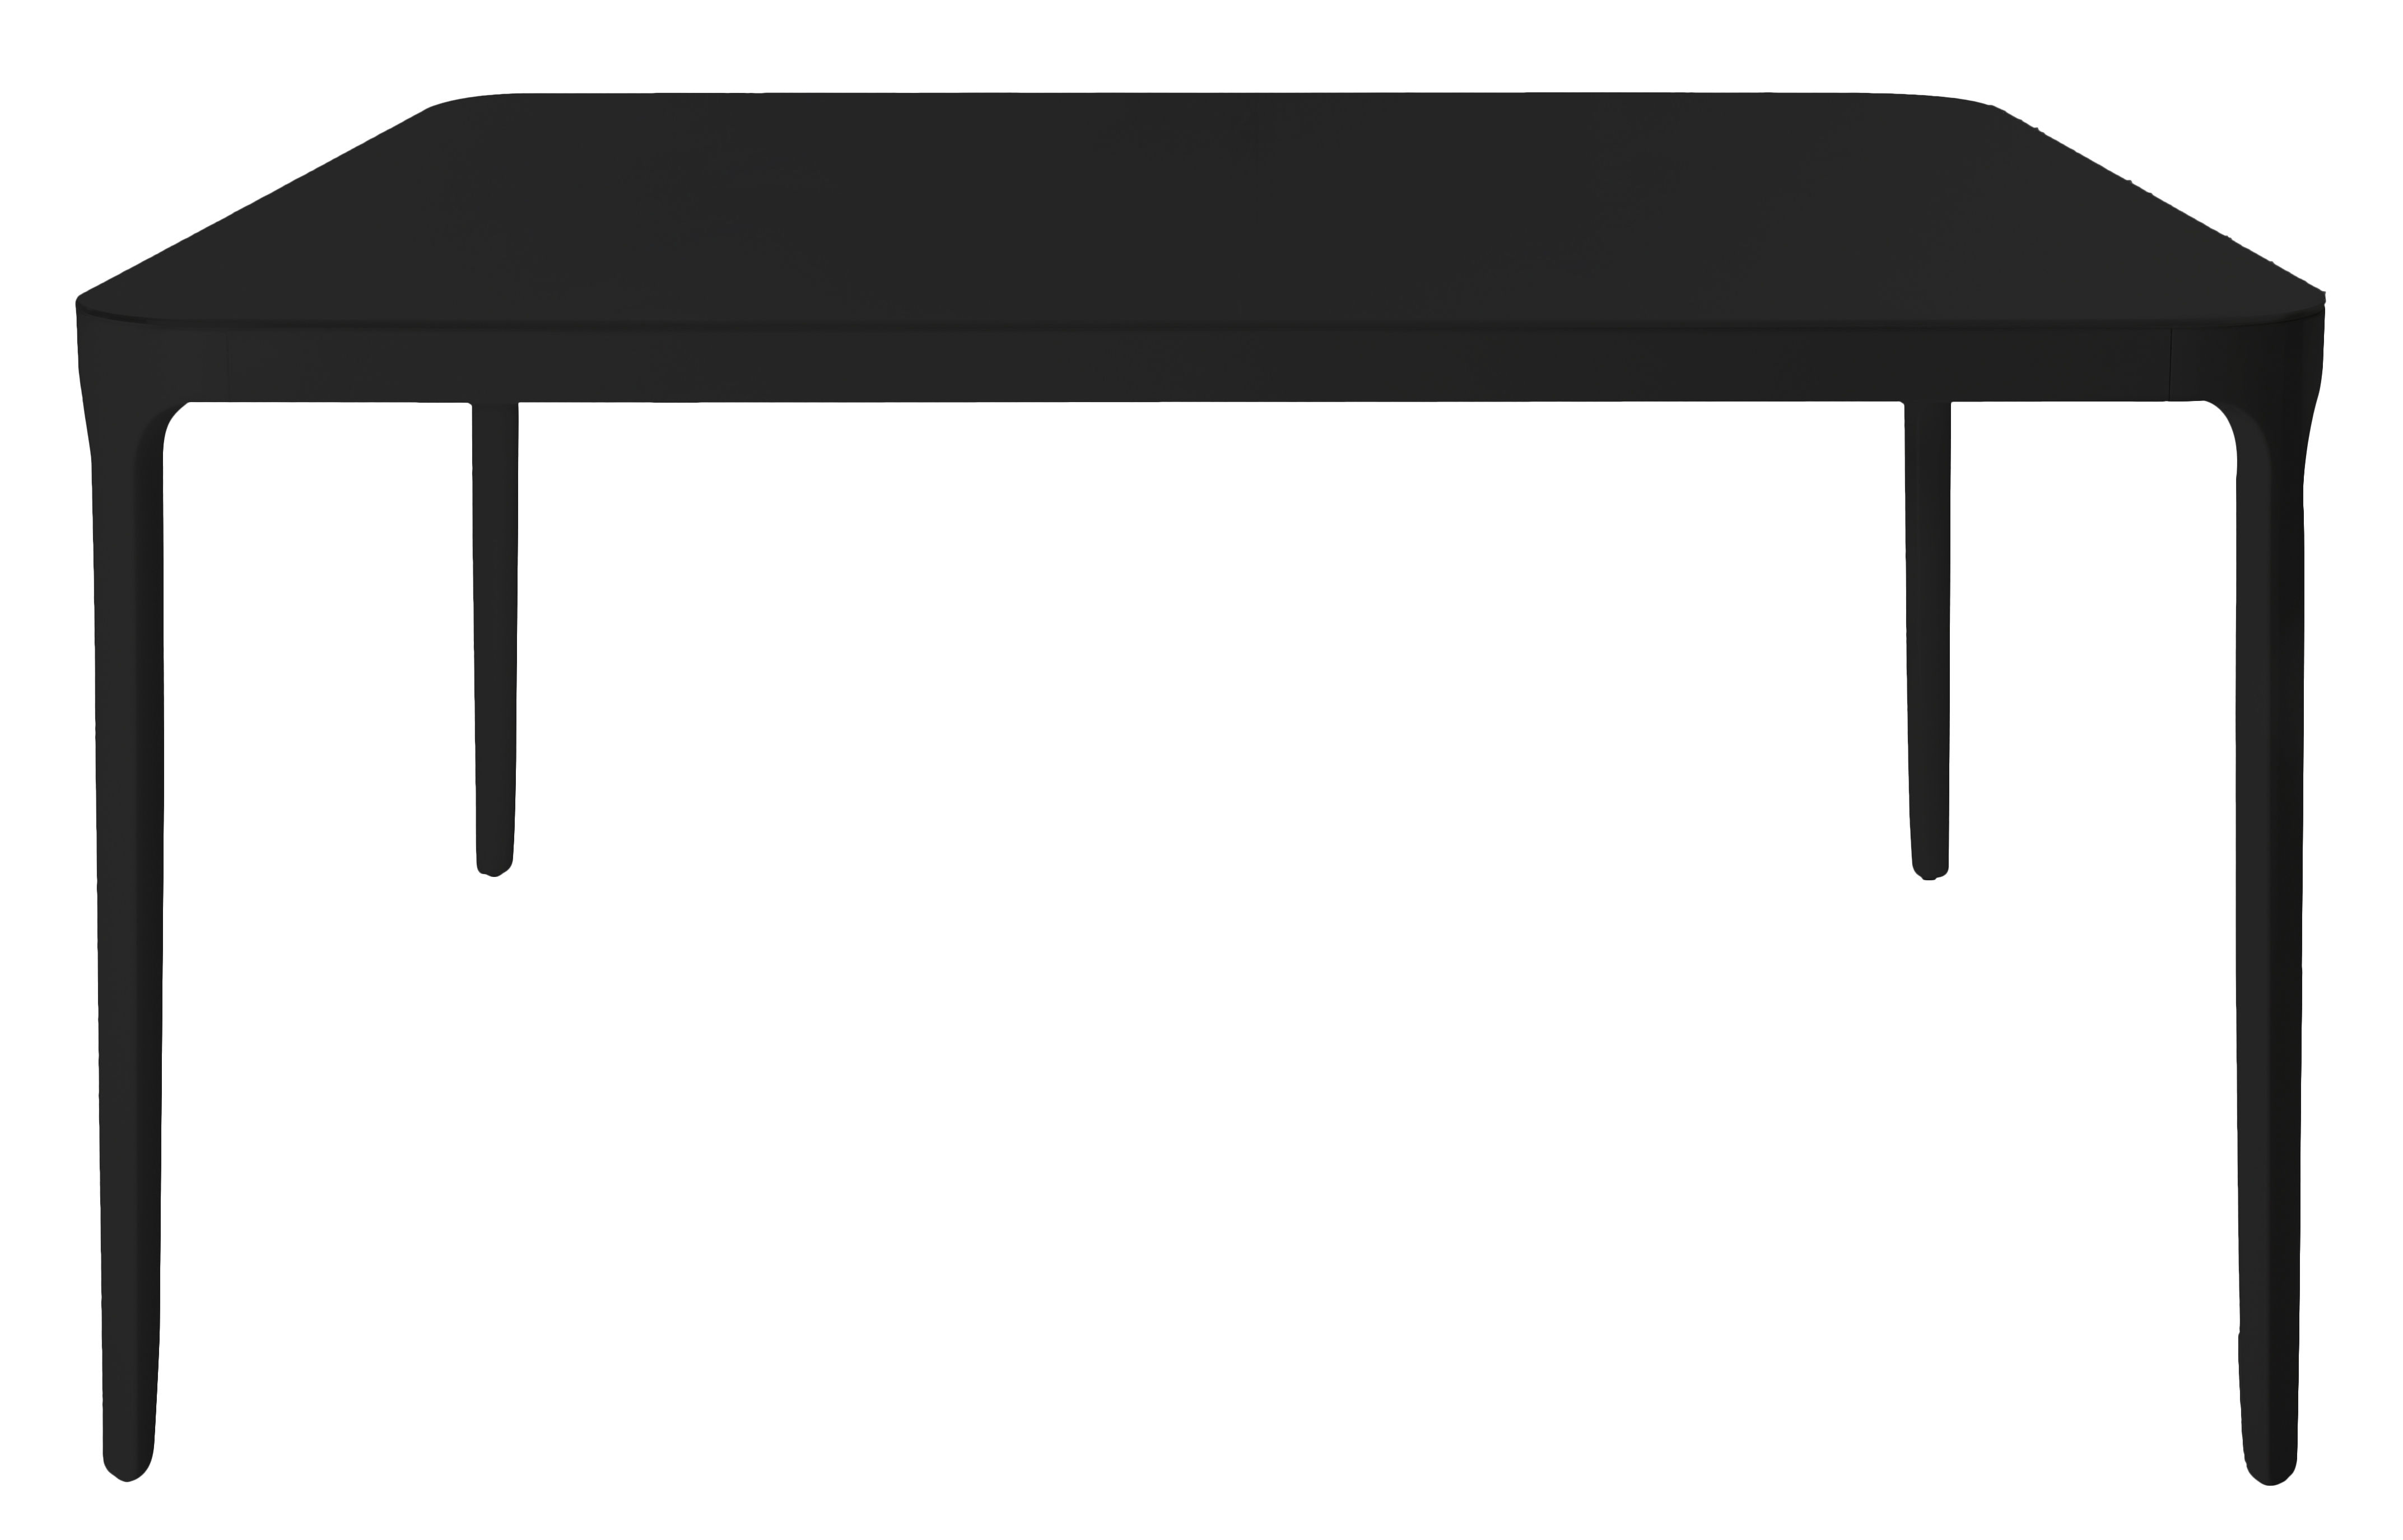 Furniture - Dining Tables - Vanity Square table - Square - 90 x 90 cm by Magis - 90 x 90 cm / Black - Varnished aluminium, Varnished glass